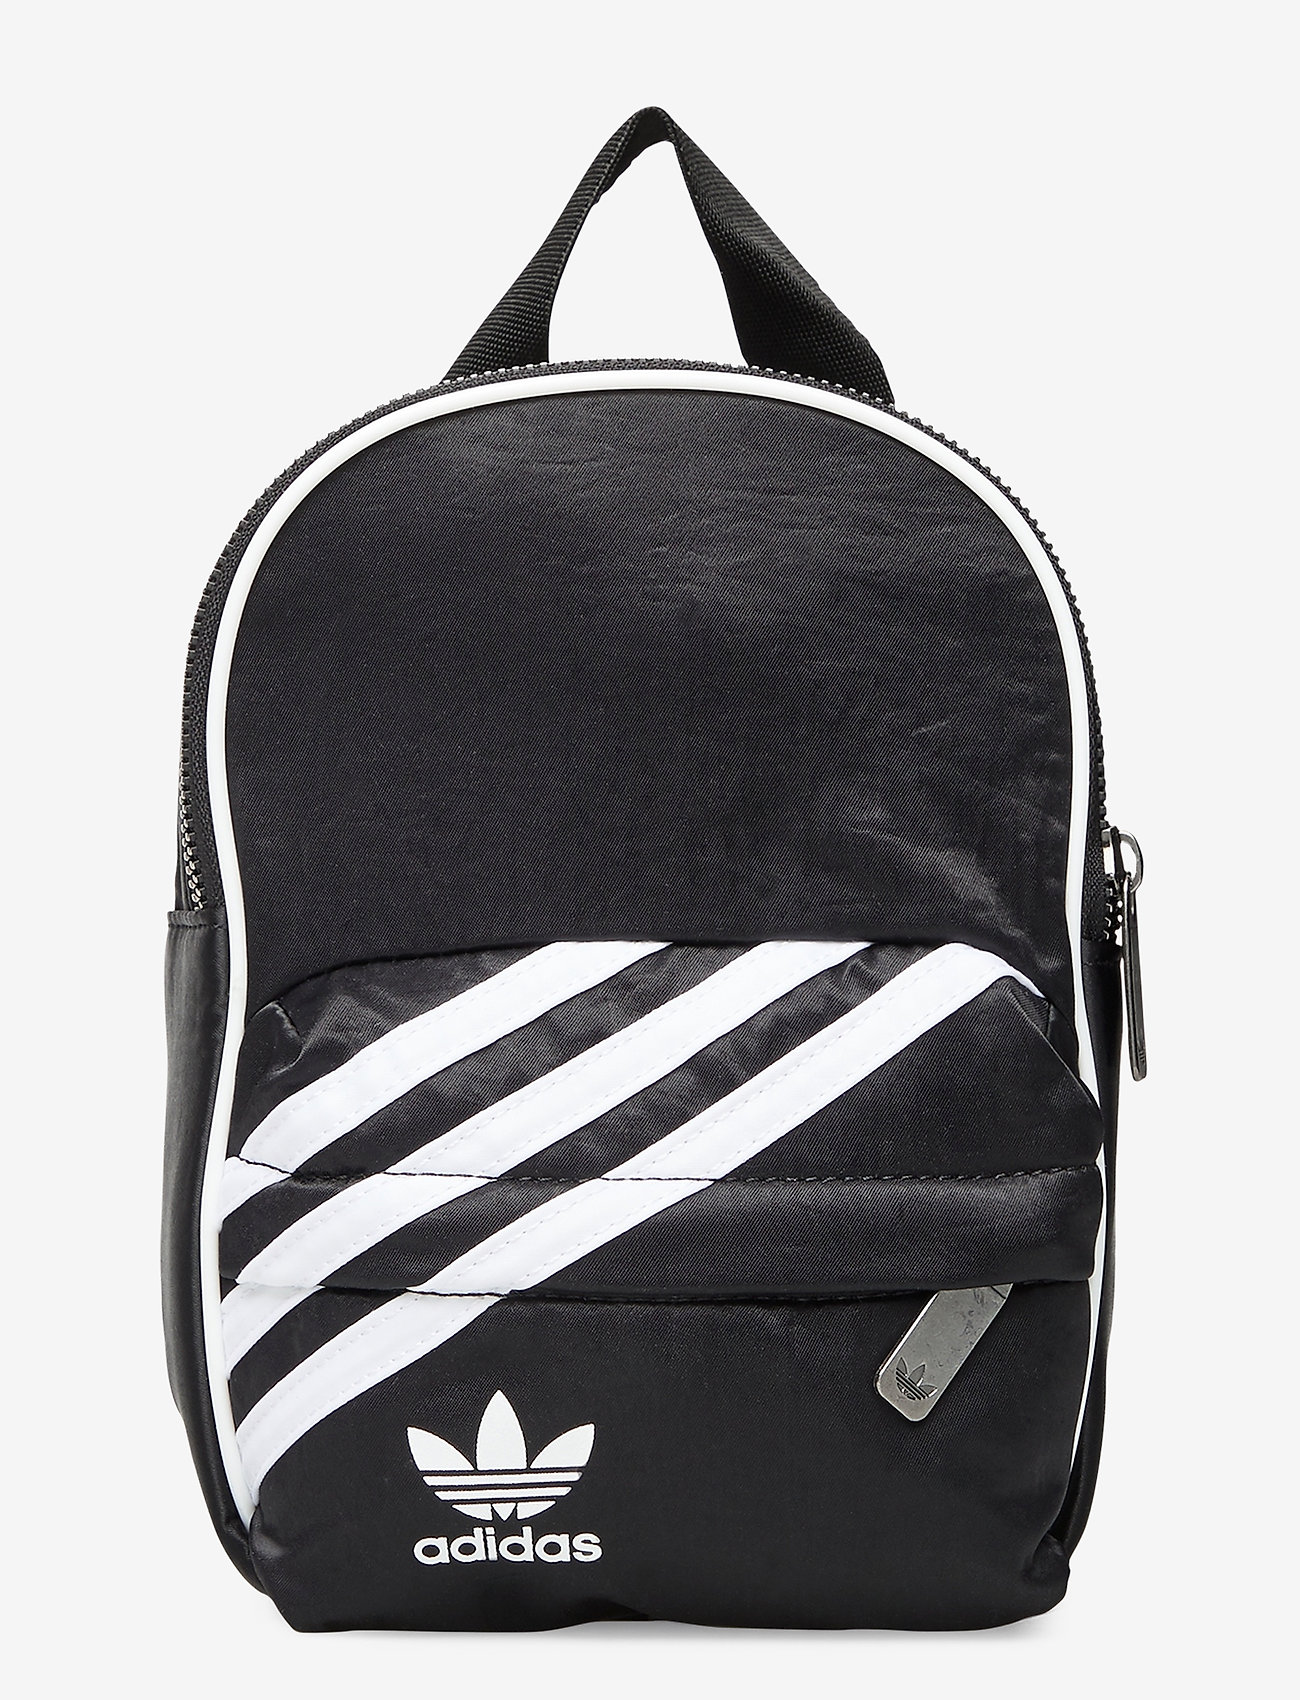 adidas Originals - BP MINI - training bags - black - 1